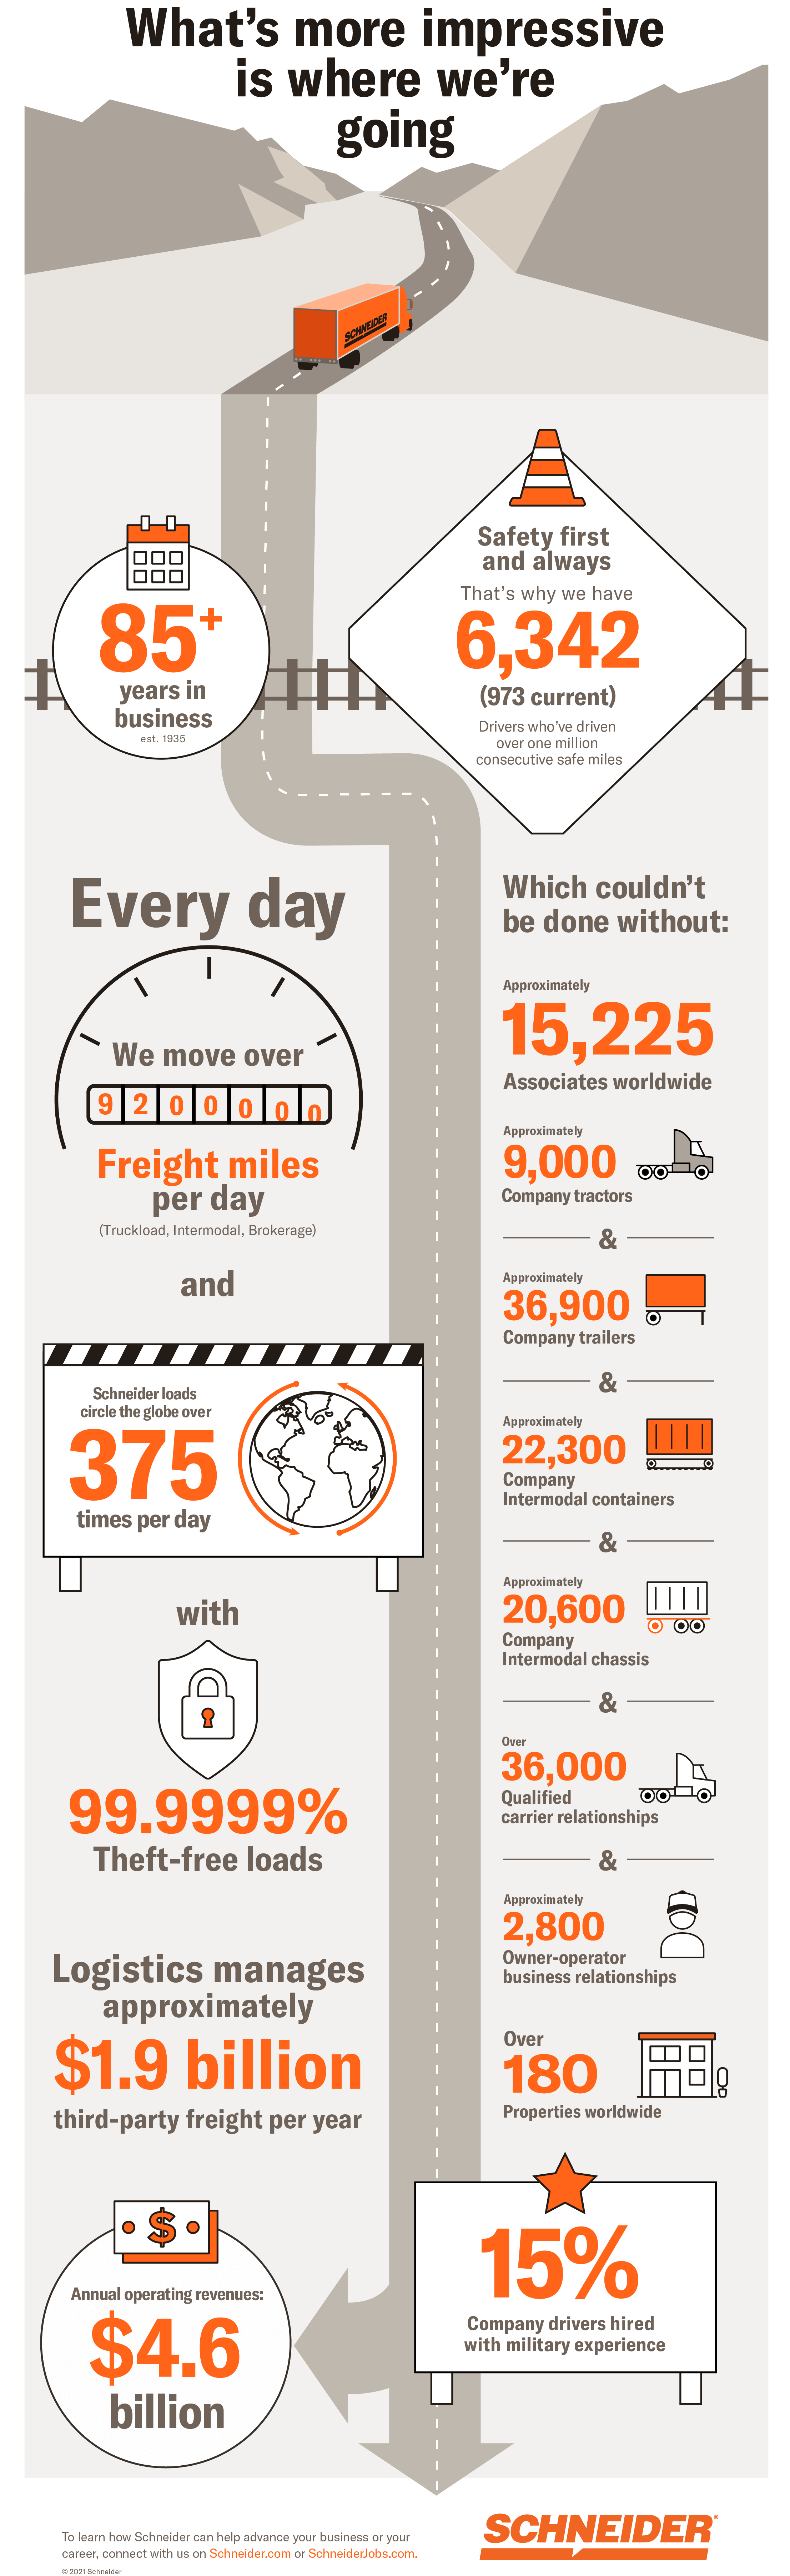 By the Numbers infographic